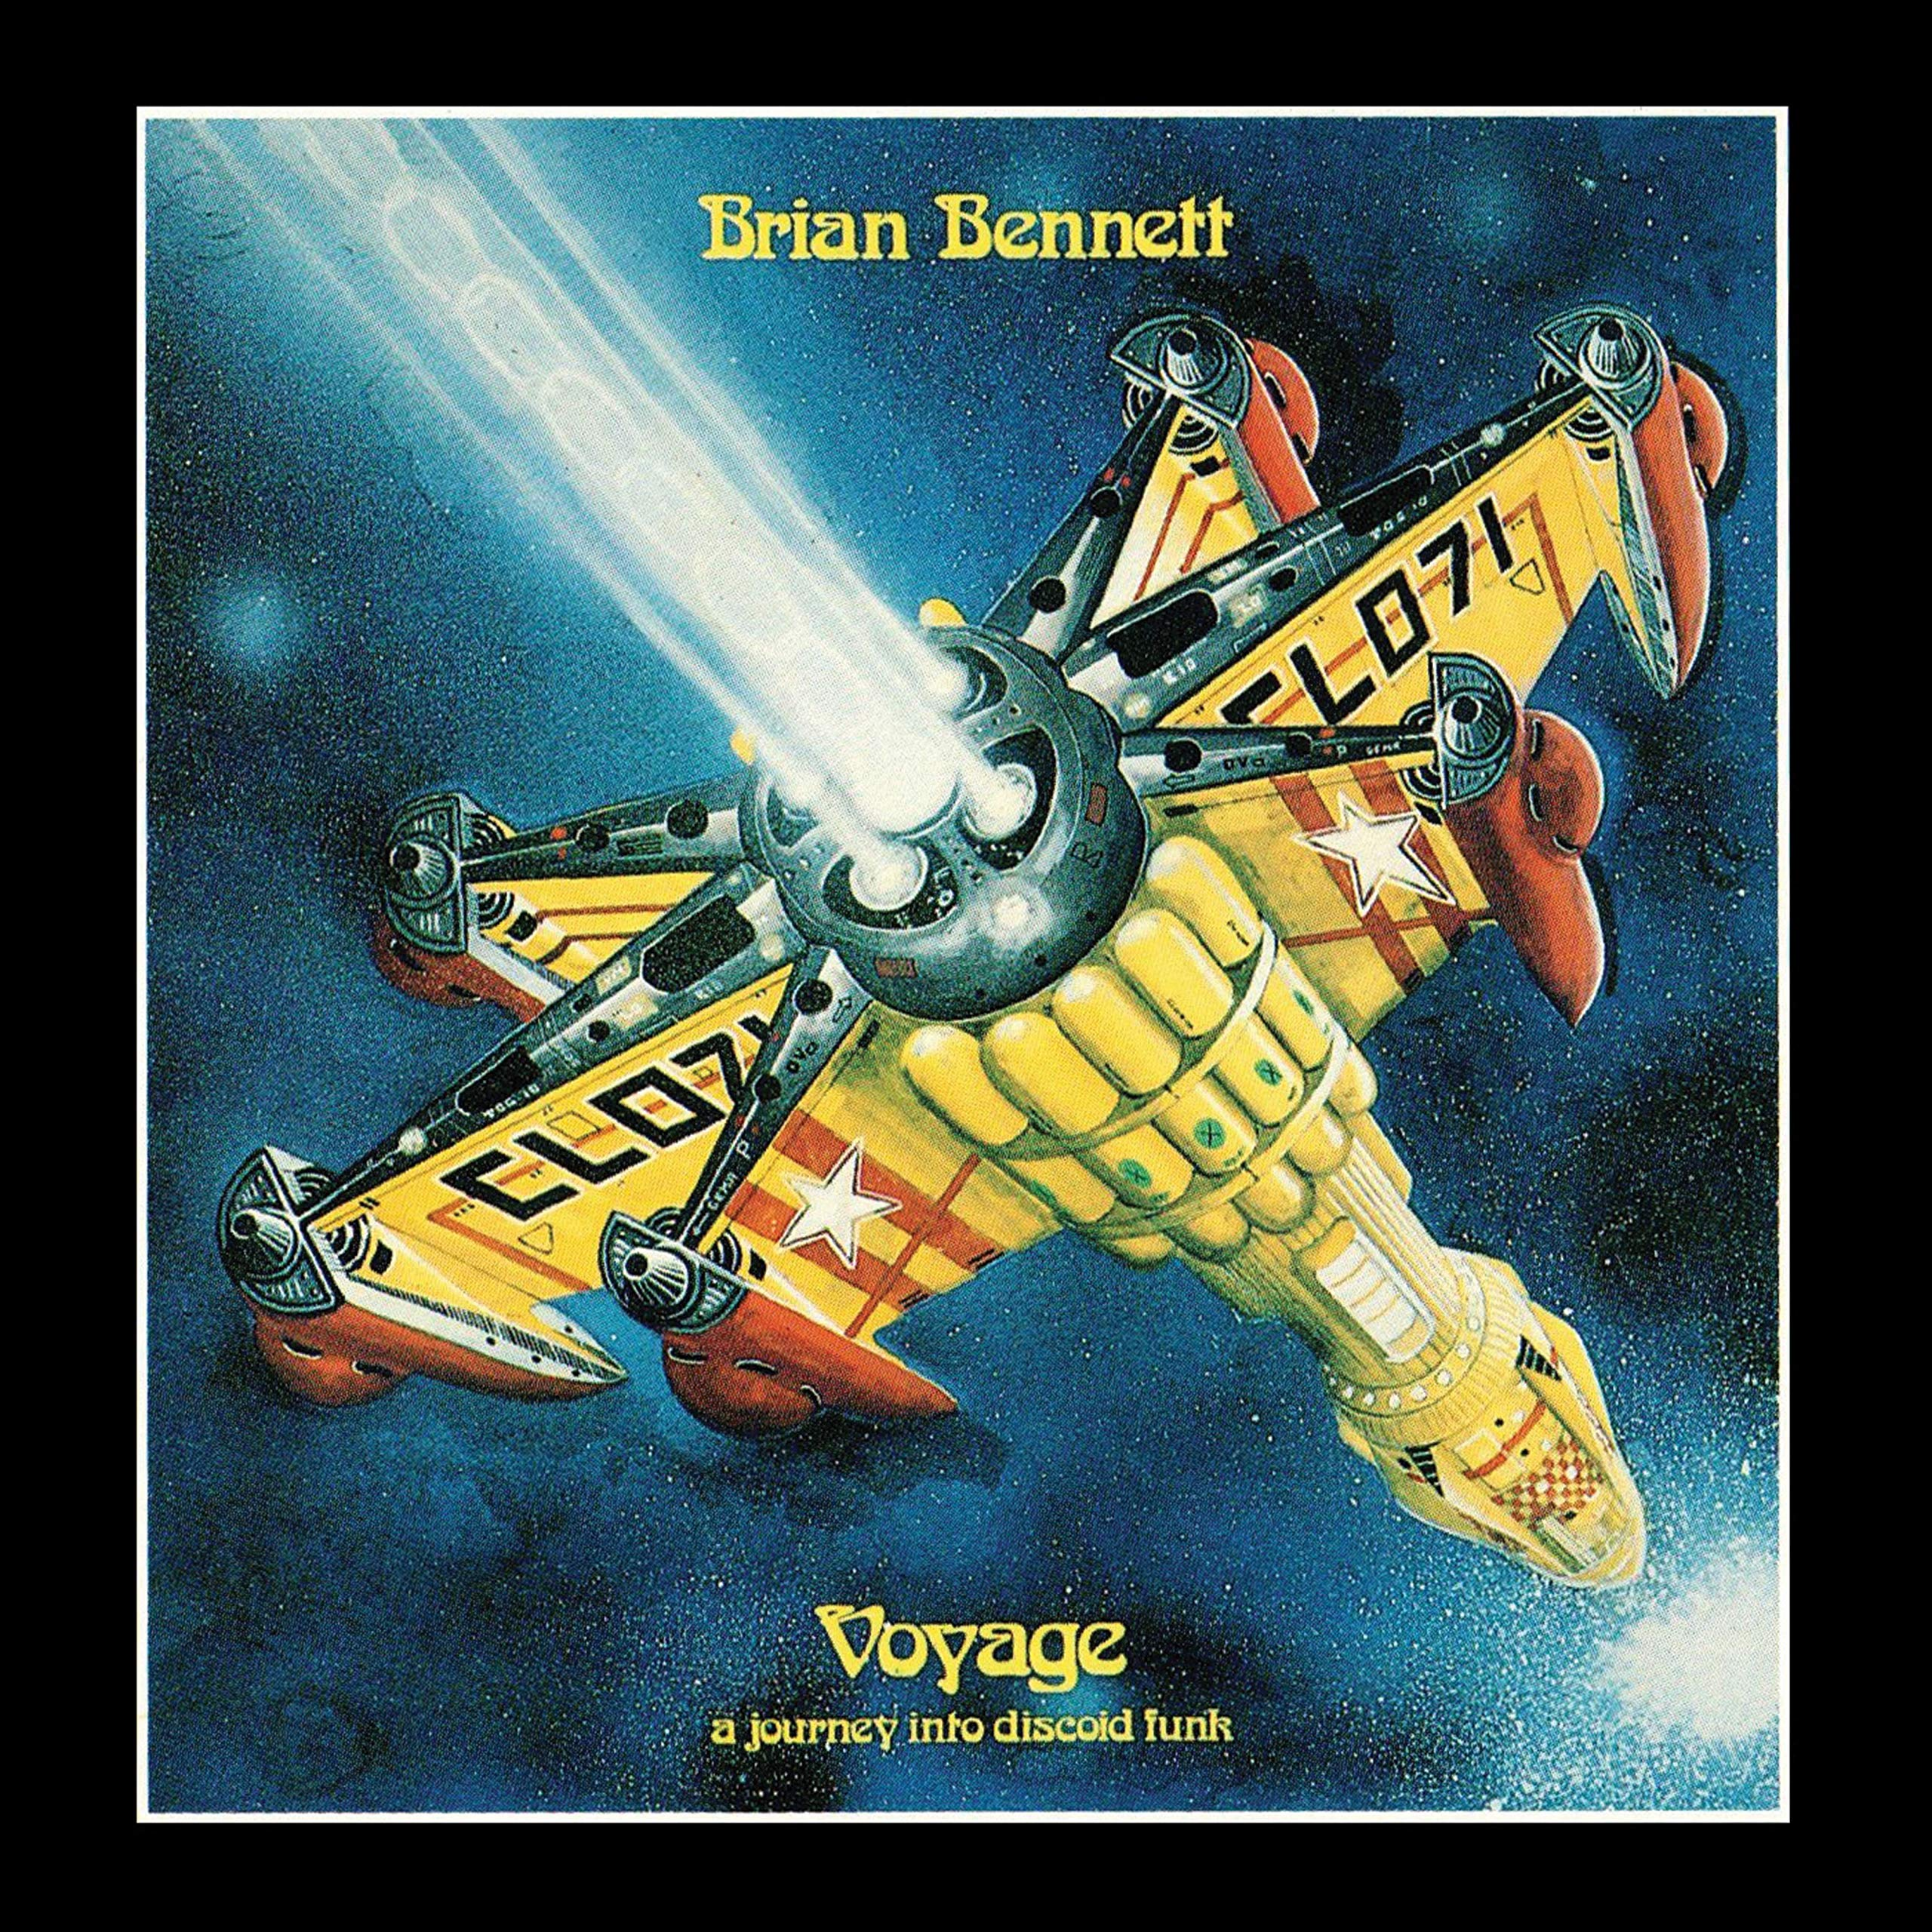 Brian Bennett - Voyage  A Journey Into Discoid Funk (2020) [FLAC] Download